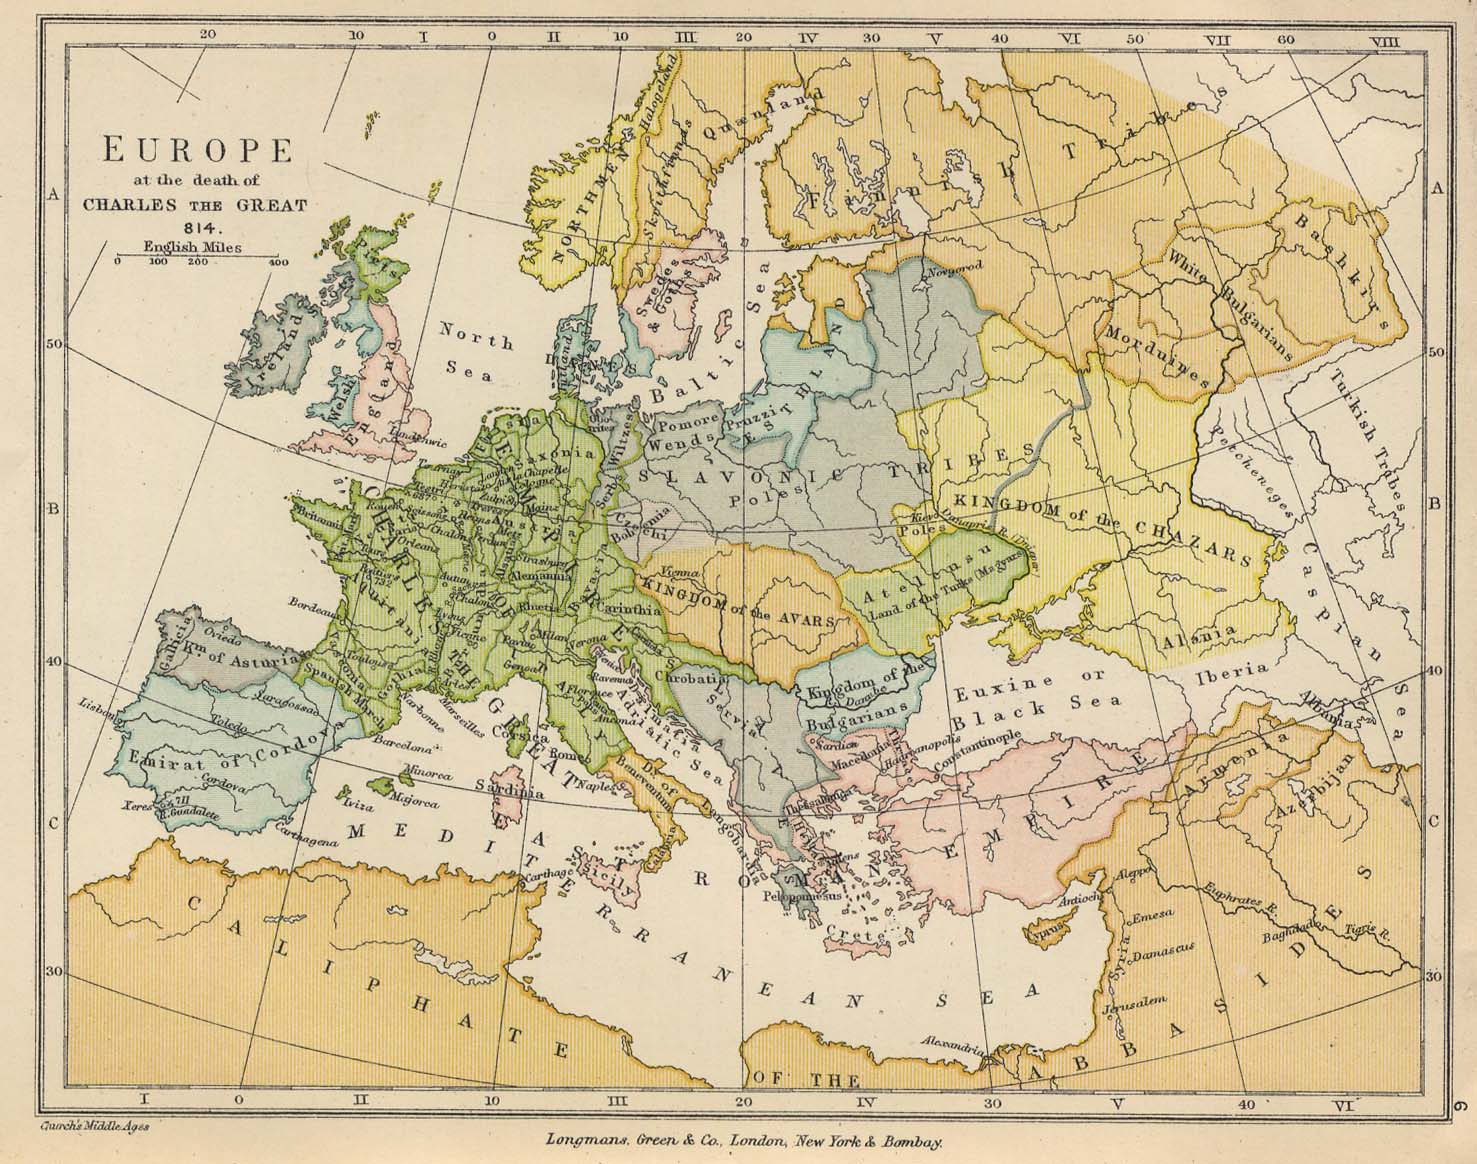 Map of Europe at the death of Charles the Great, 814